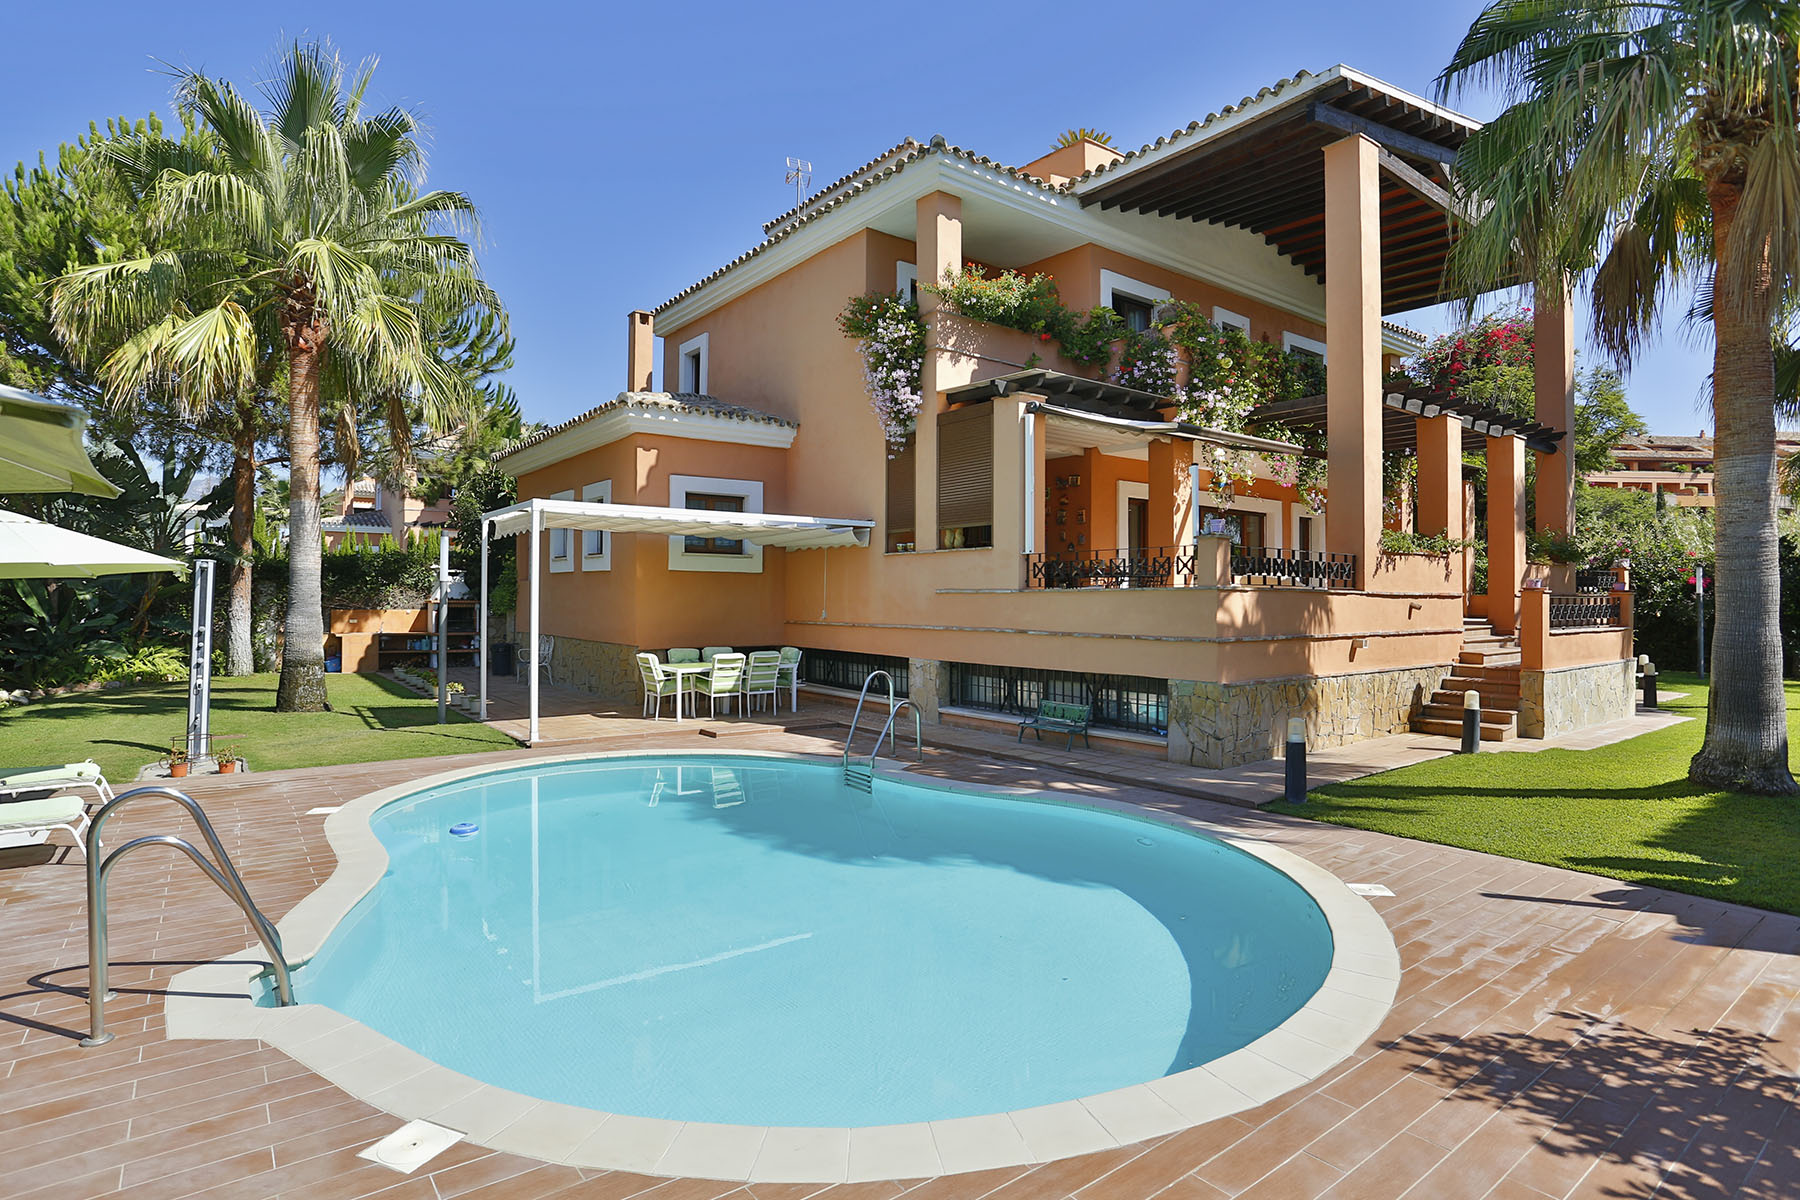 Single Family Home for Sale at Splendid villa walking distance to the beach La Reserva de Los Monteros Marbella, Andalucia, 29600 Spain